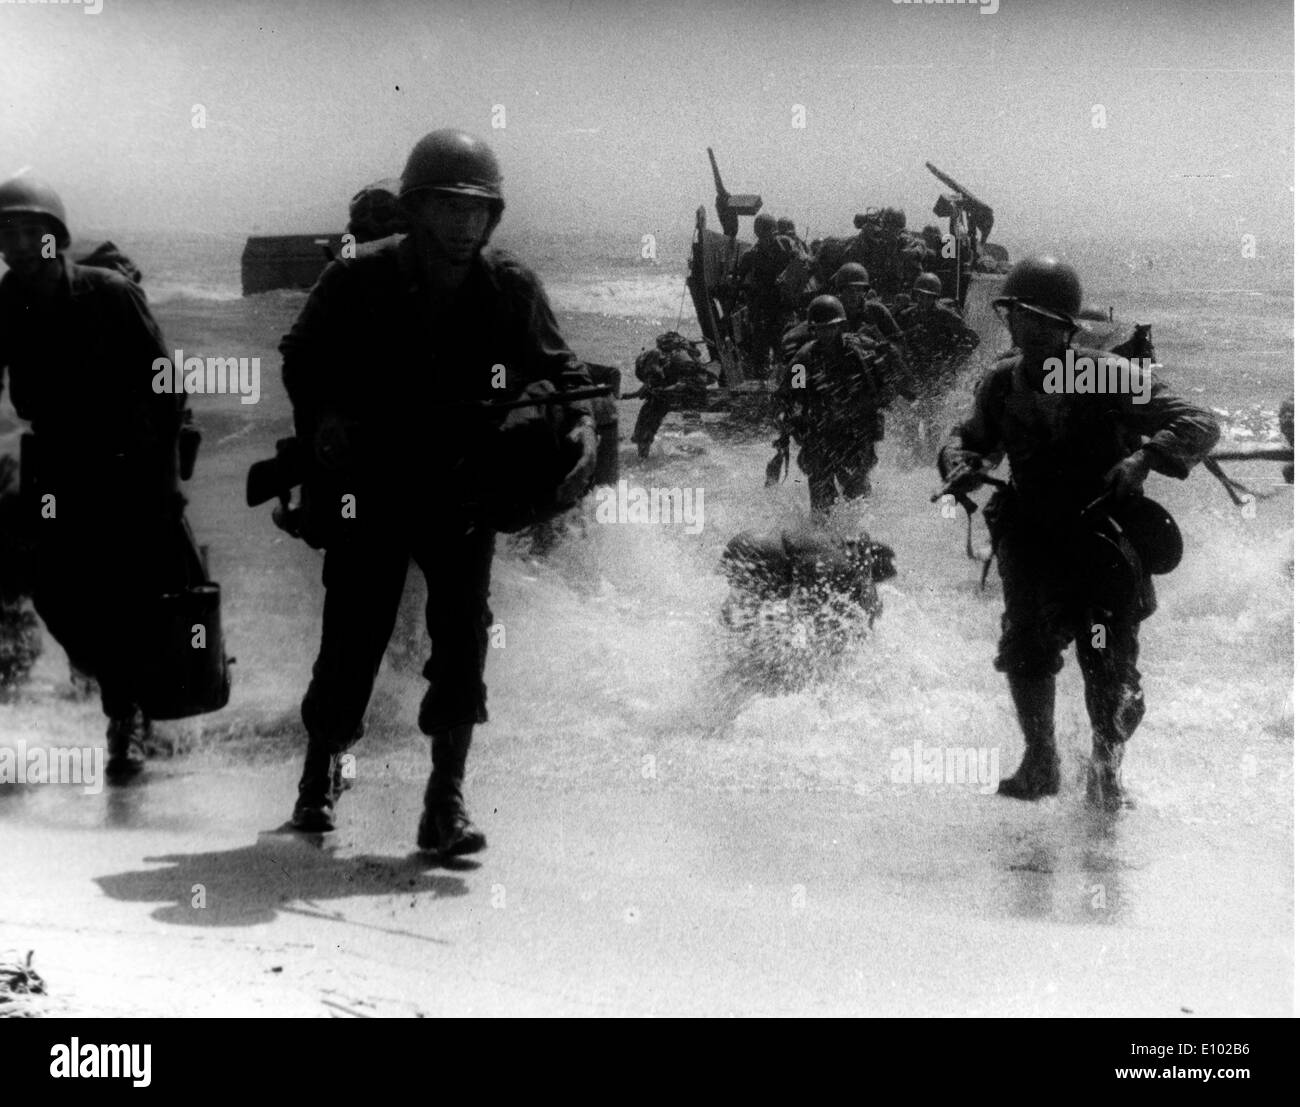 Soldiers on the beach and surf during World War Two Pacific Theater. - Stock Image